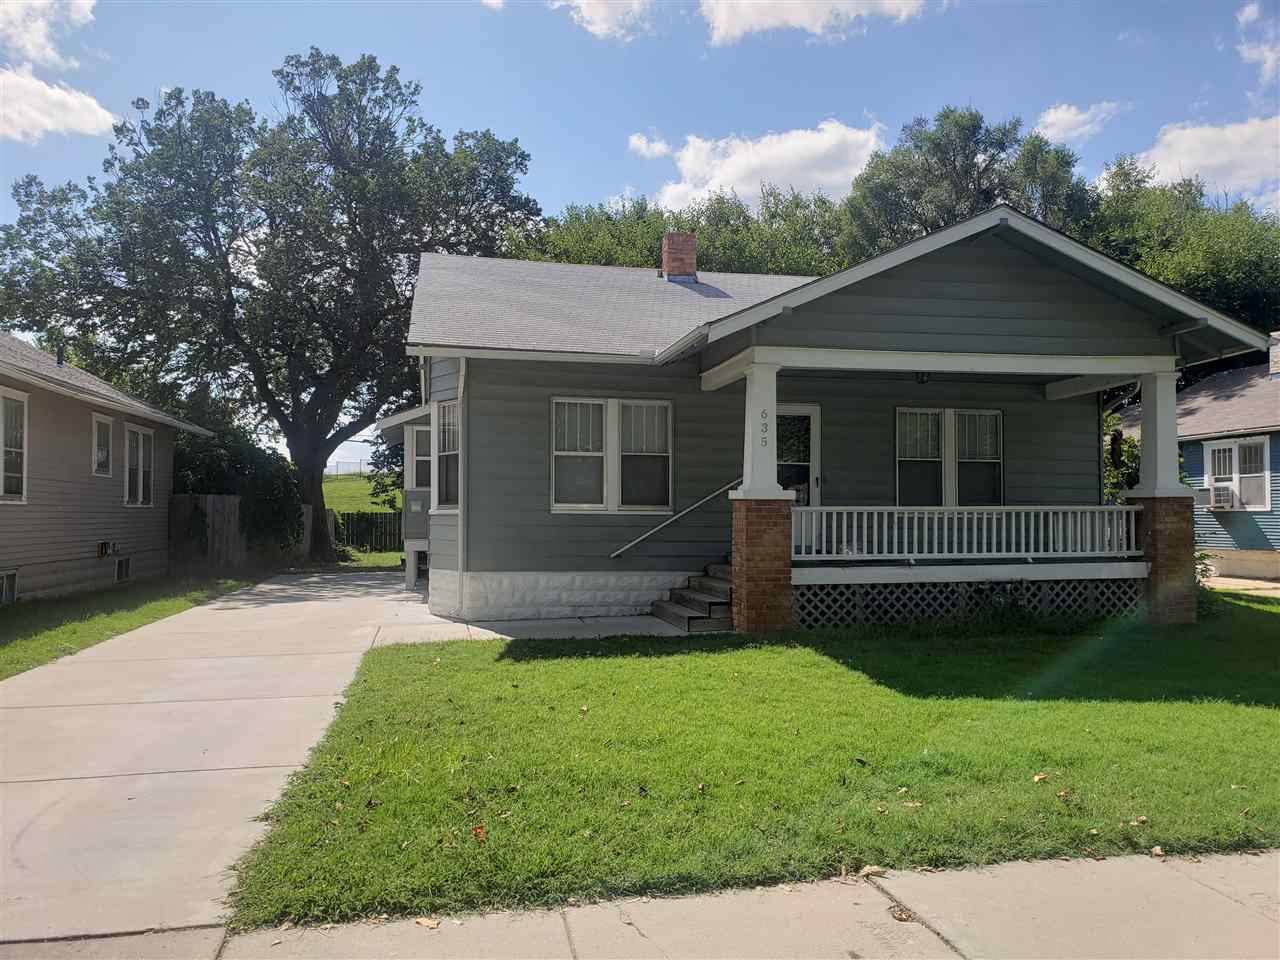 3 Bed/1 Bath Updated Bungalow.  Hardwood floors throughout.  Remodeled kitchen and bath.  Nearly eve